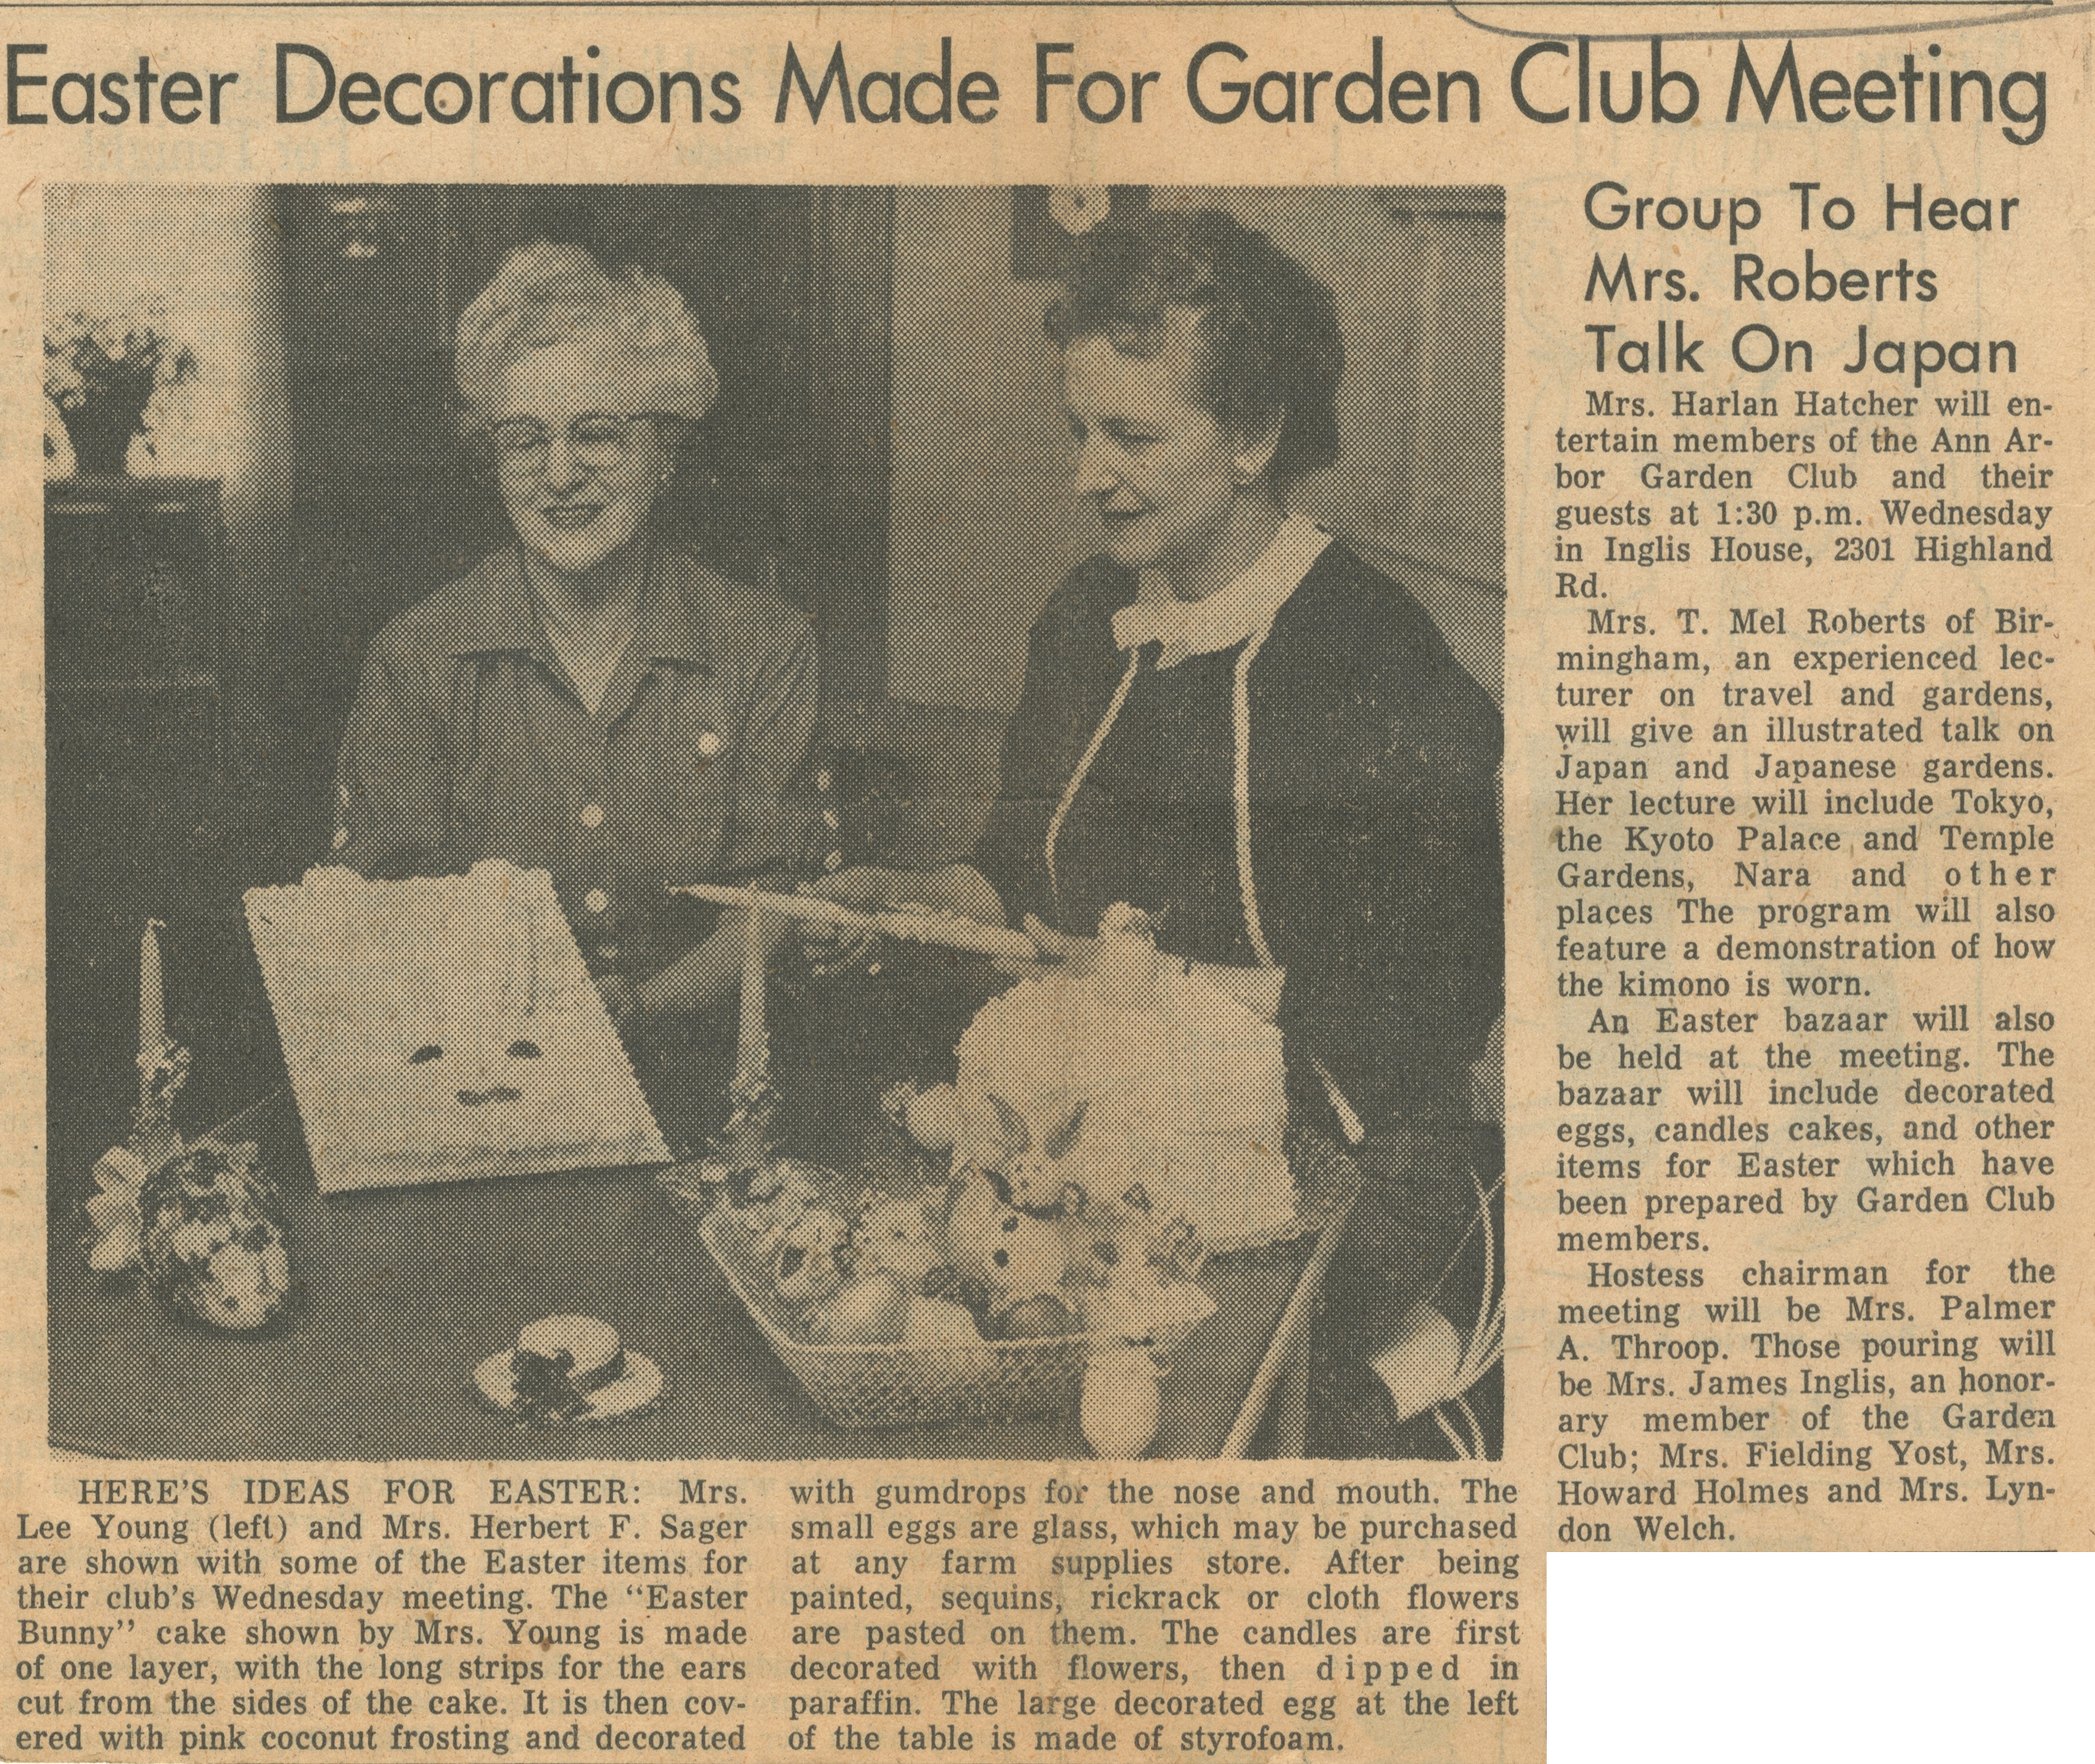 Easter Decorations Made For Garden Club Meeting - Group To Hear Mrs. Roberts Talk On Japan image